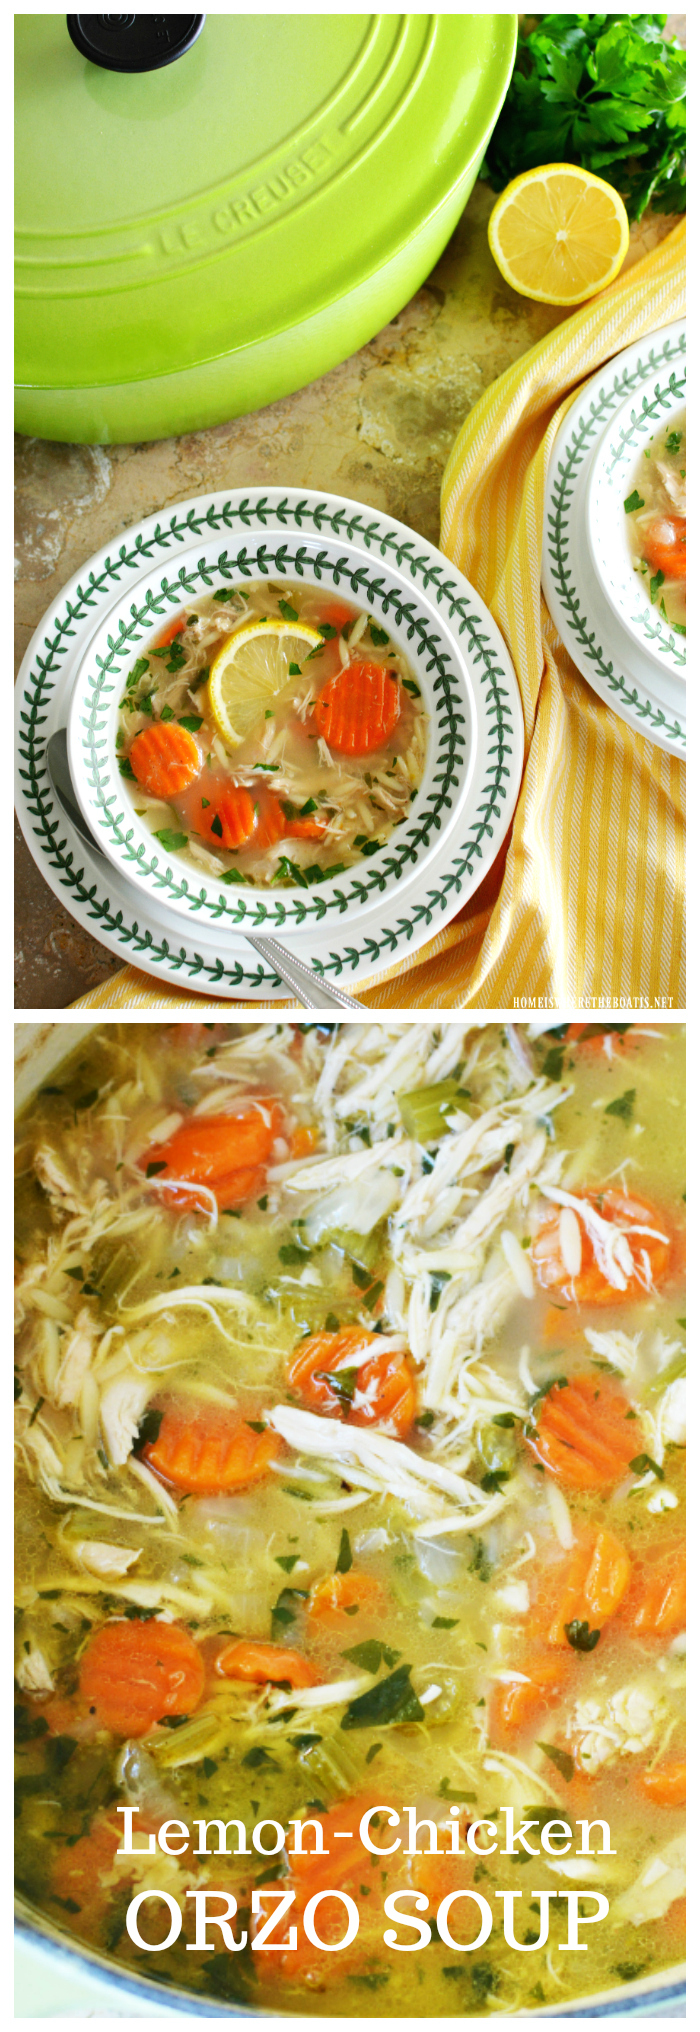 Favorite chicken soup recipe, ideal for cold and flu season, Lemon Chicken Orzo Soup